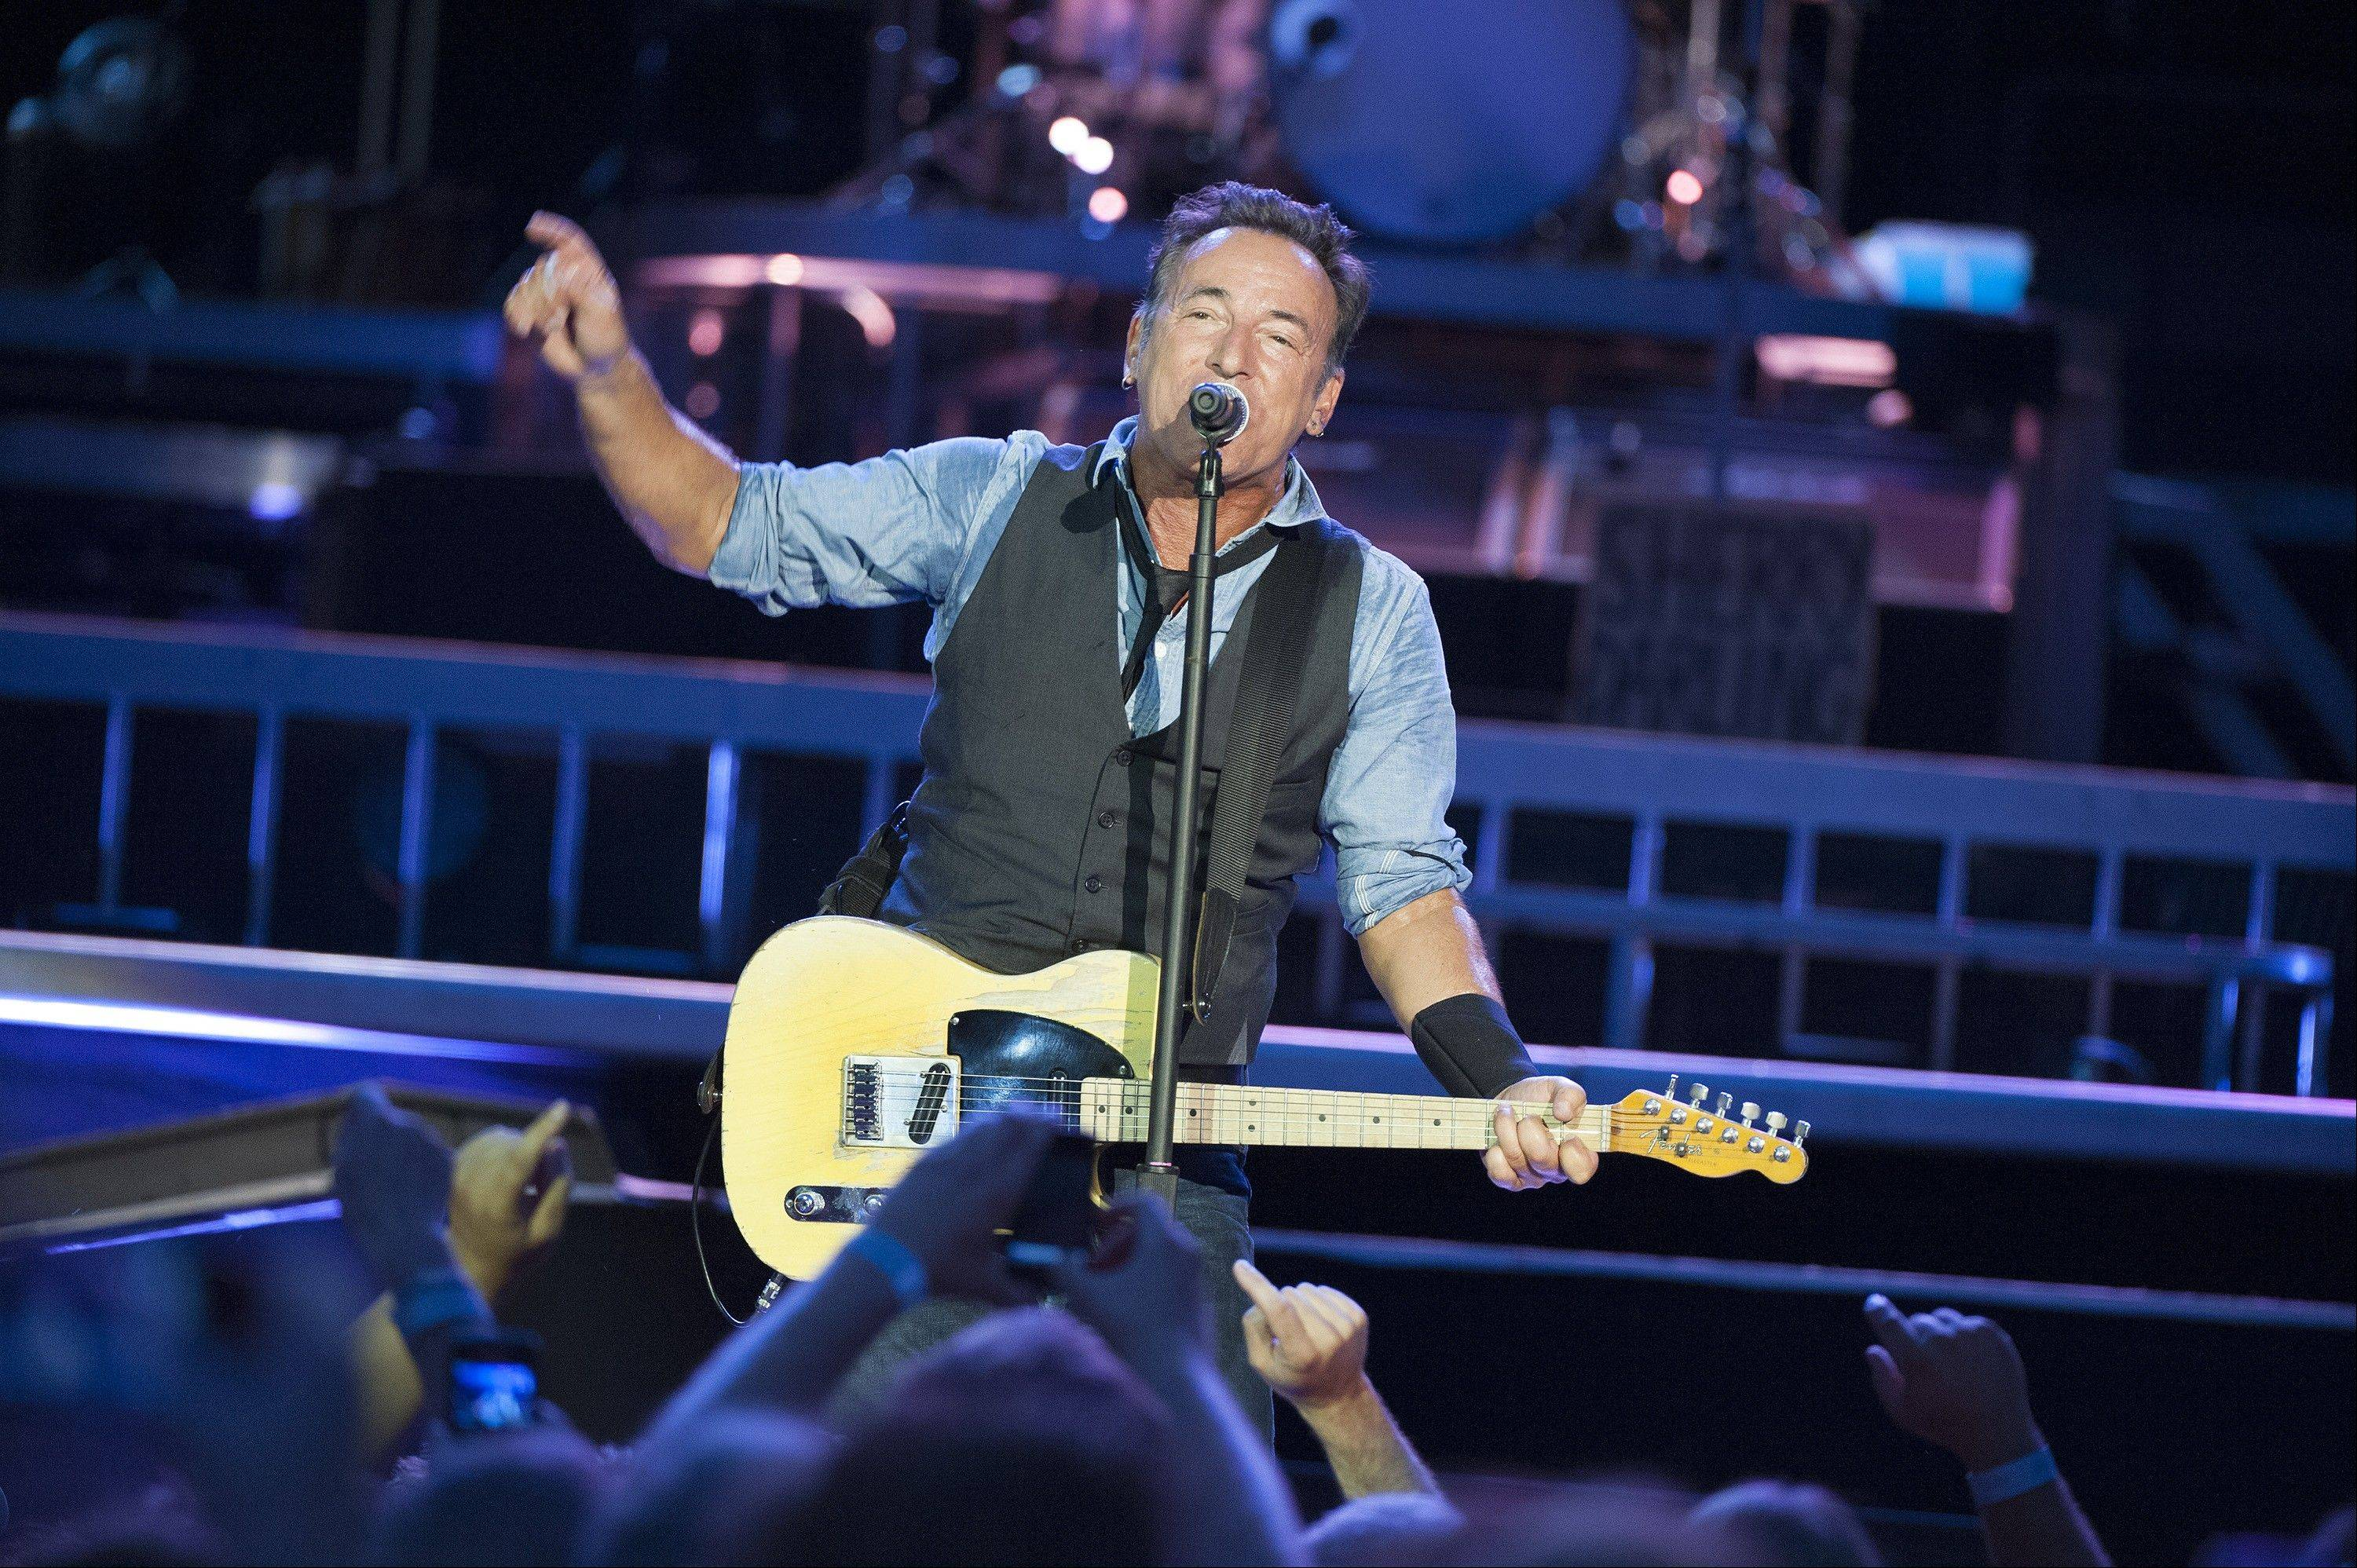 Bruce Springsteen & The E Street Band will play two sold-out shows at Wrigley Field this weekend.